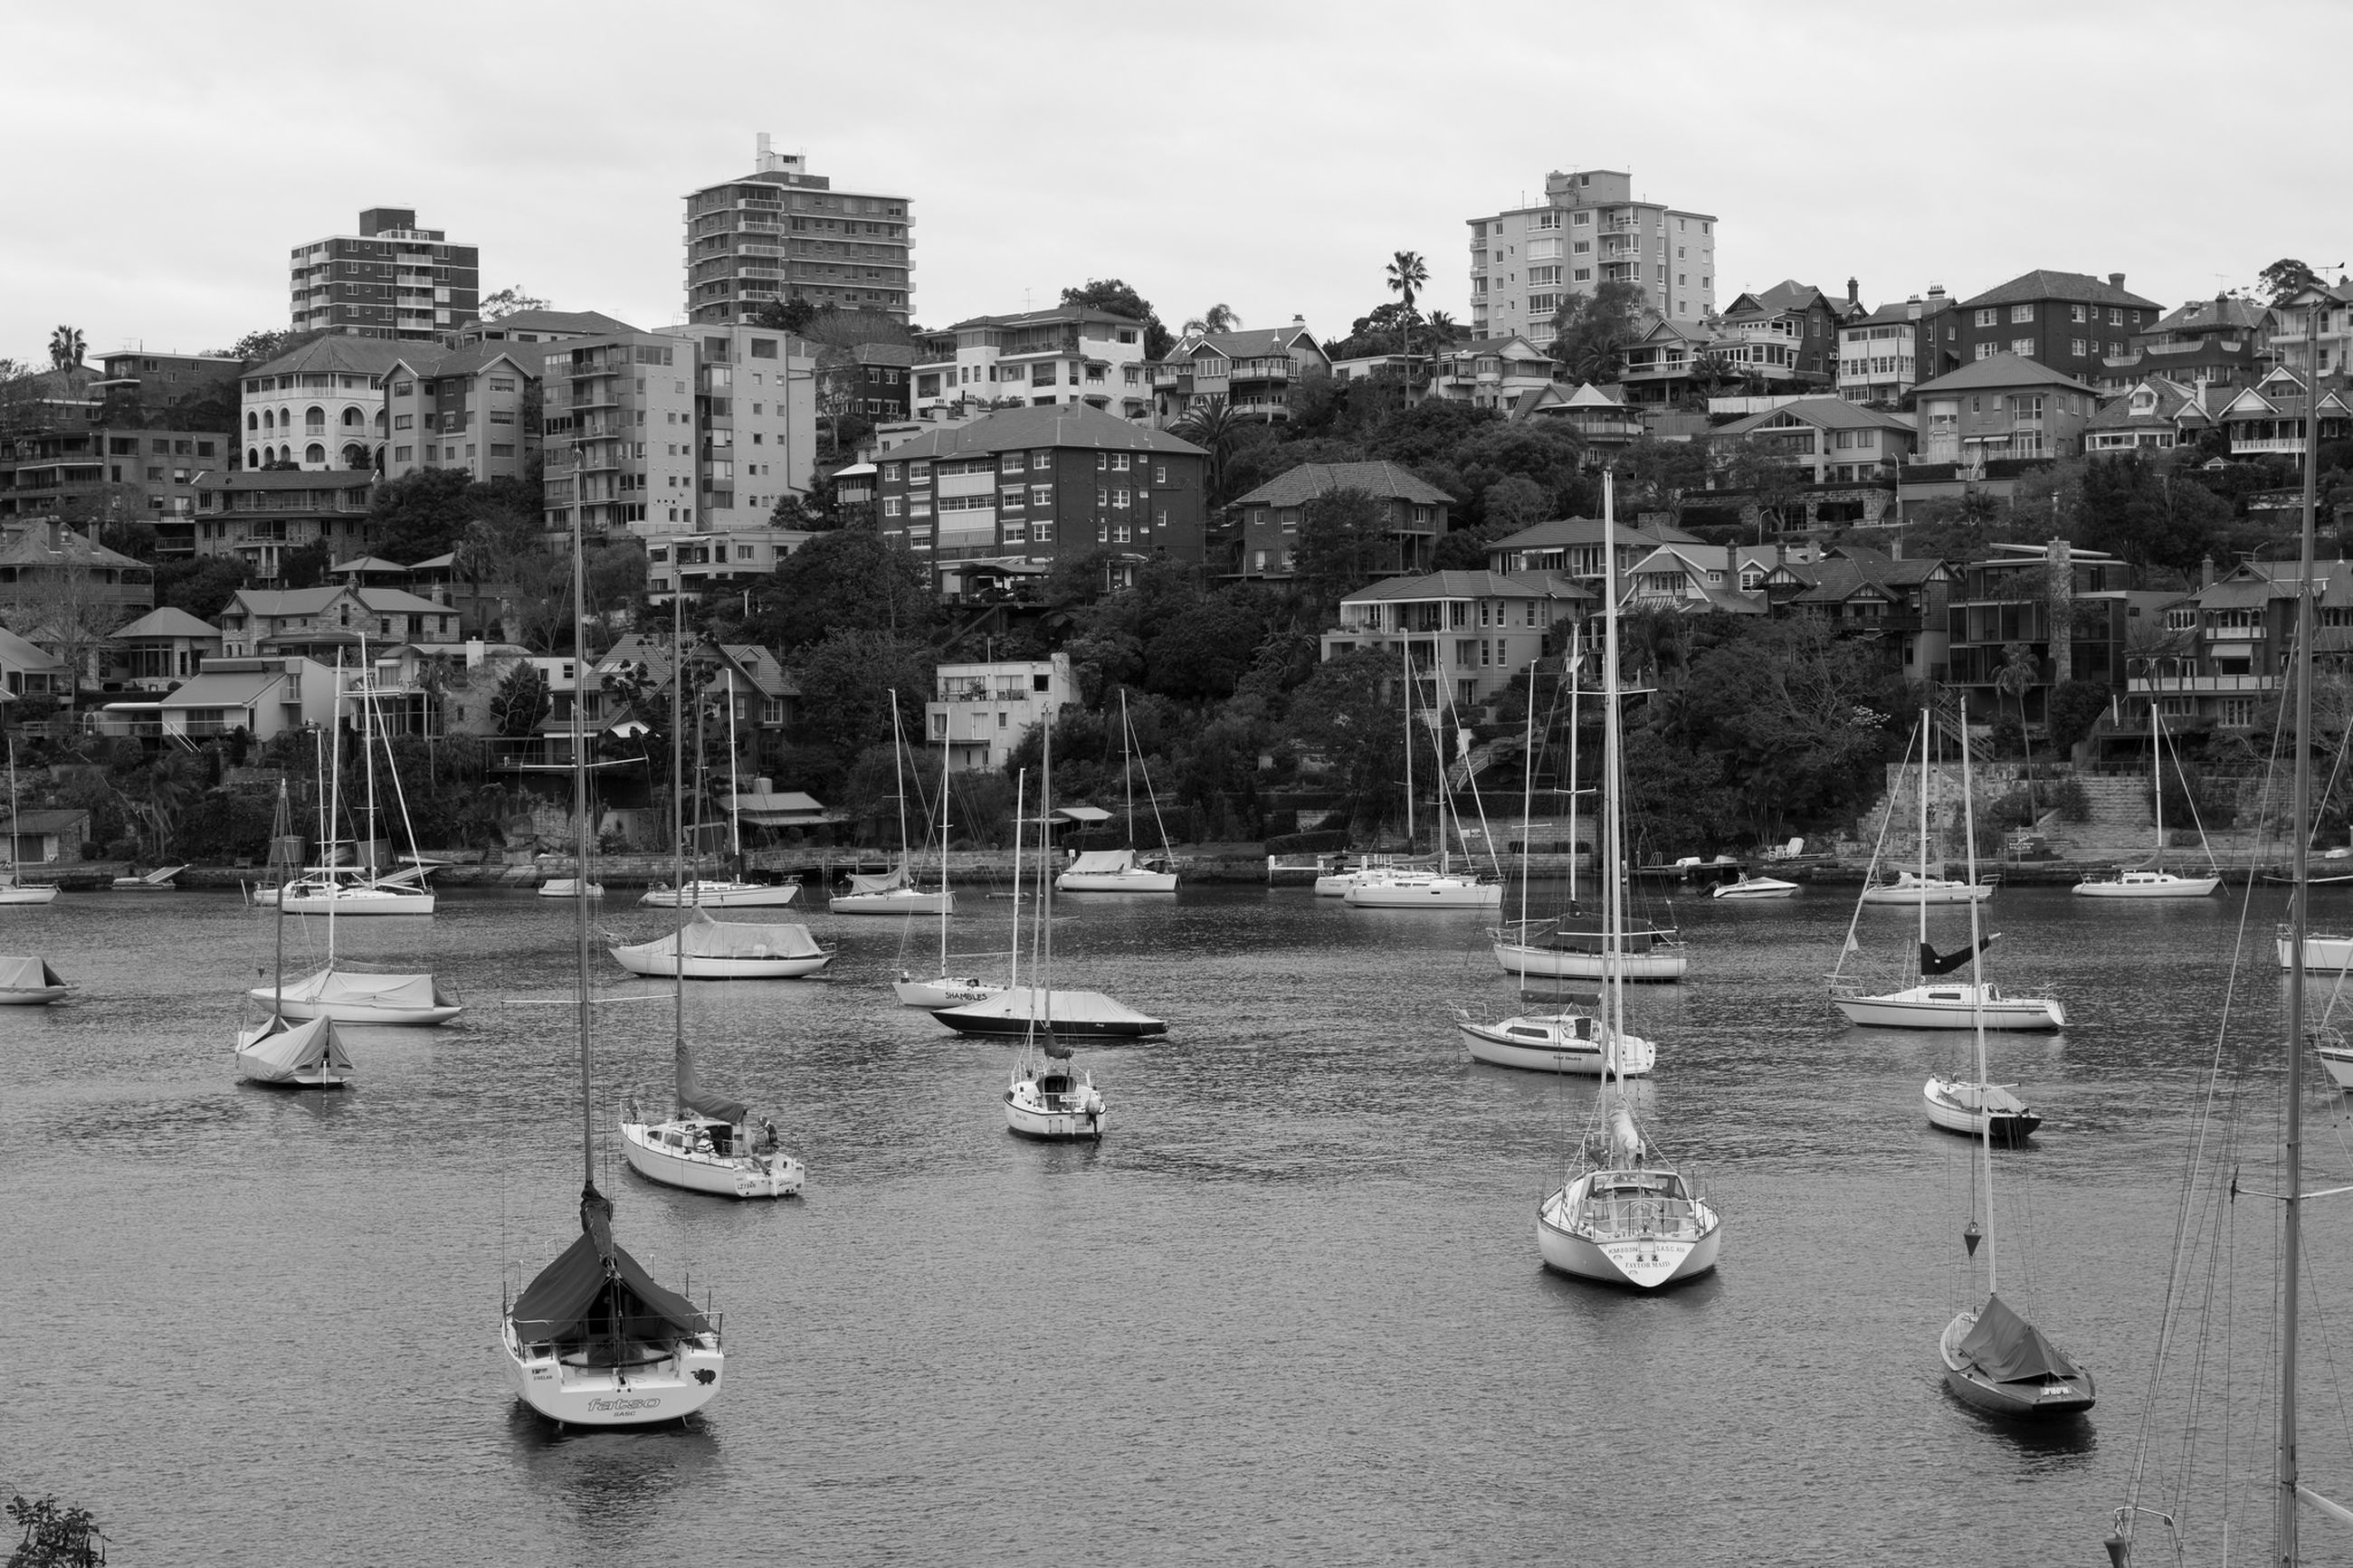 Sailboats moored on river by city against sky